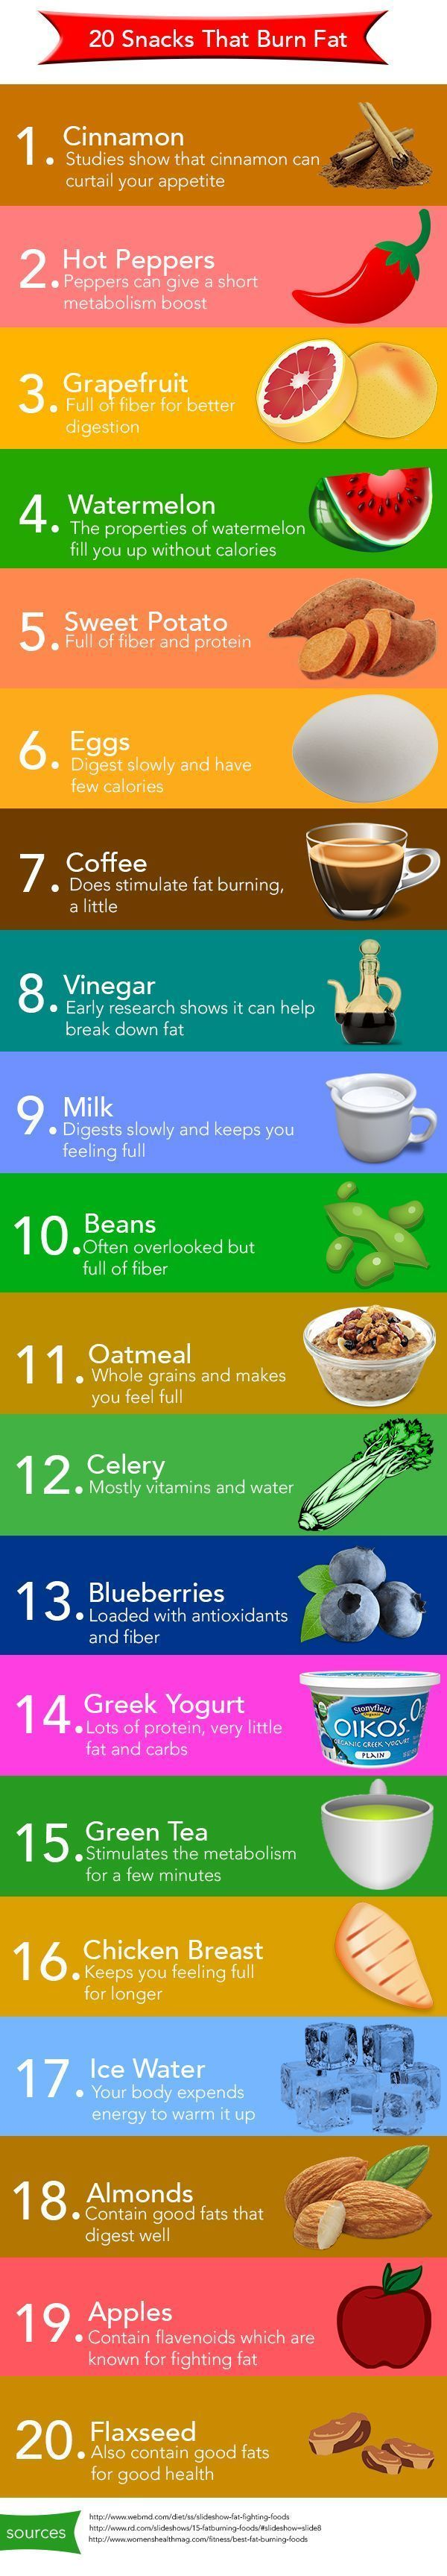 https://www.rougeframboise.com/sante/10-aliments-detox-consommer-au-quotidien Get a Flat Belly in 4 Weeks! More info here: http://perfect-diets.space/get-a-flat-belly-in-4-weeks/